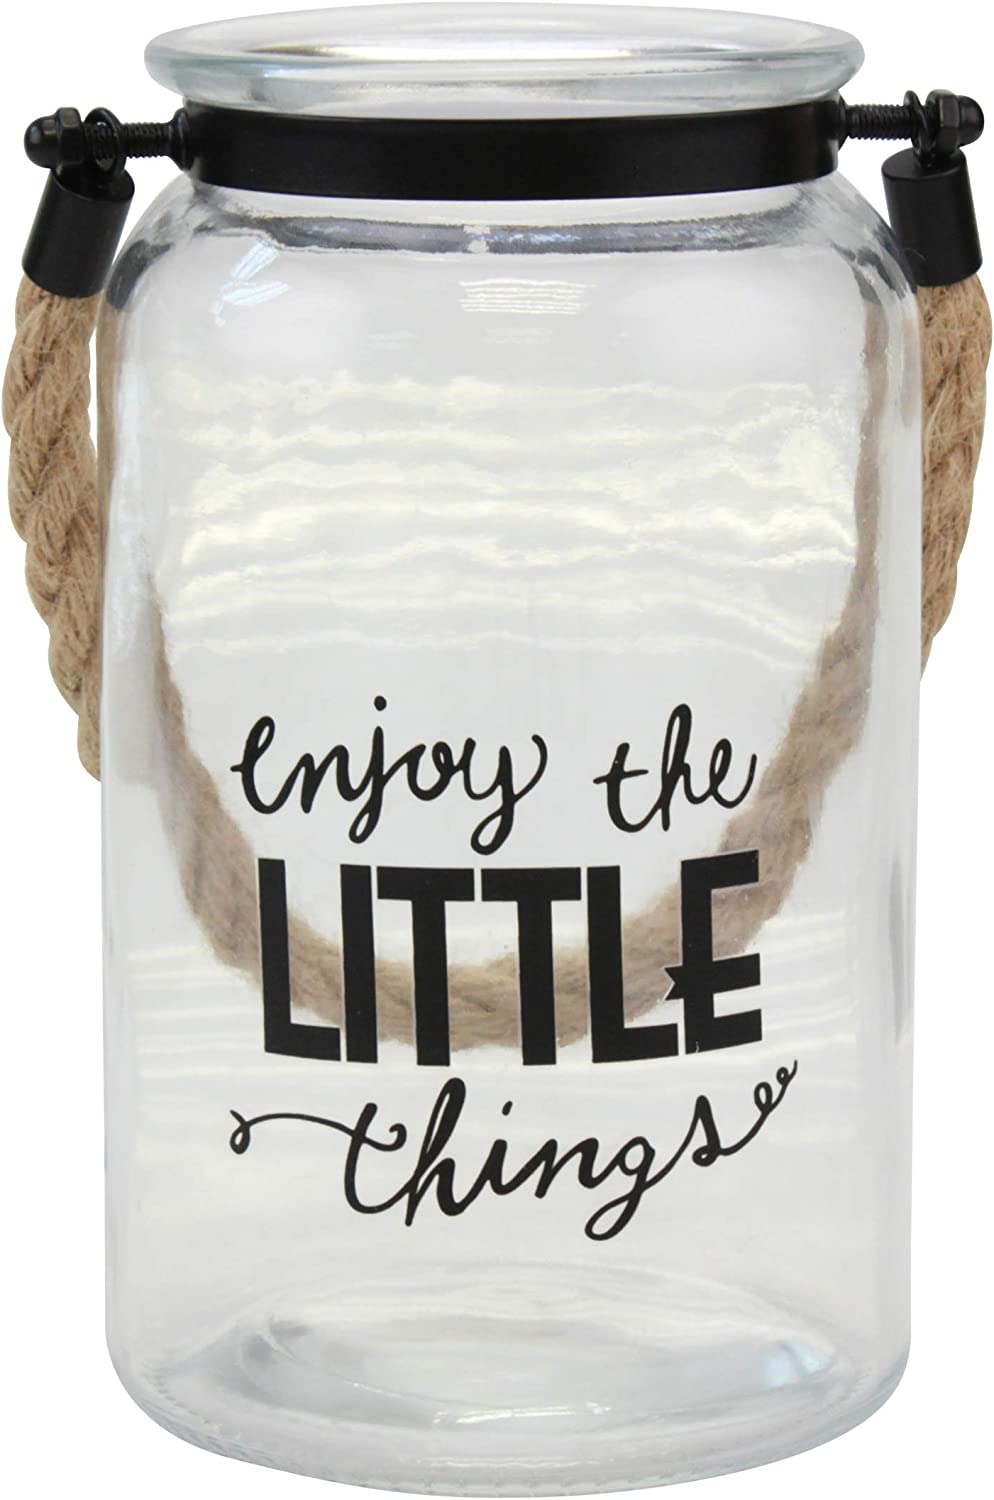 Stonebriar Enjoy The Little Things Decorative Glass Candle Lantern with Handle and Sentiment Saying, Clear